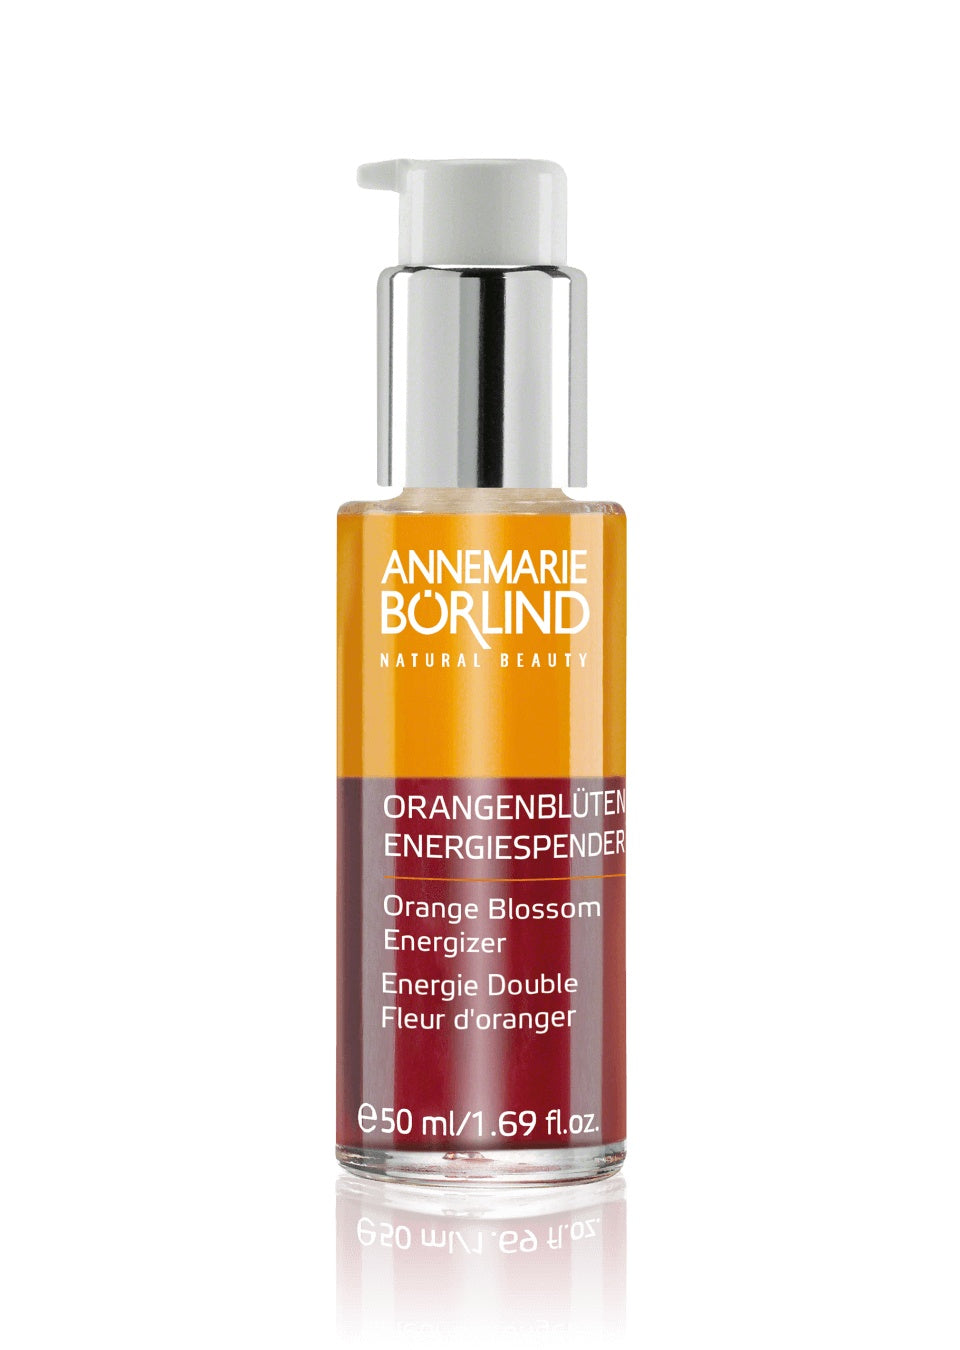 Personal Care - Annemarie Borlind Orange Blossom Energizer, 50mL